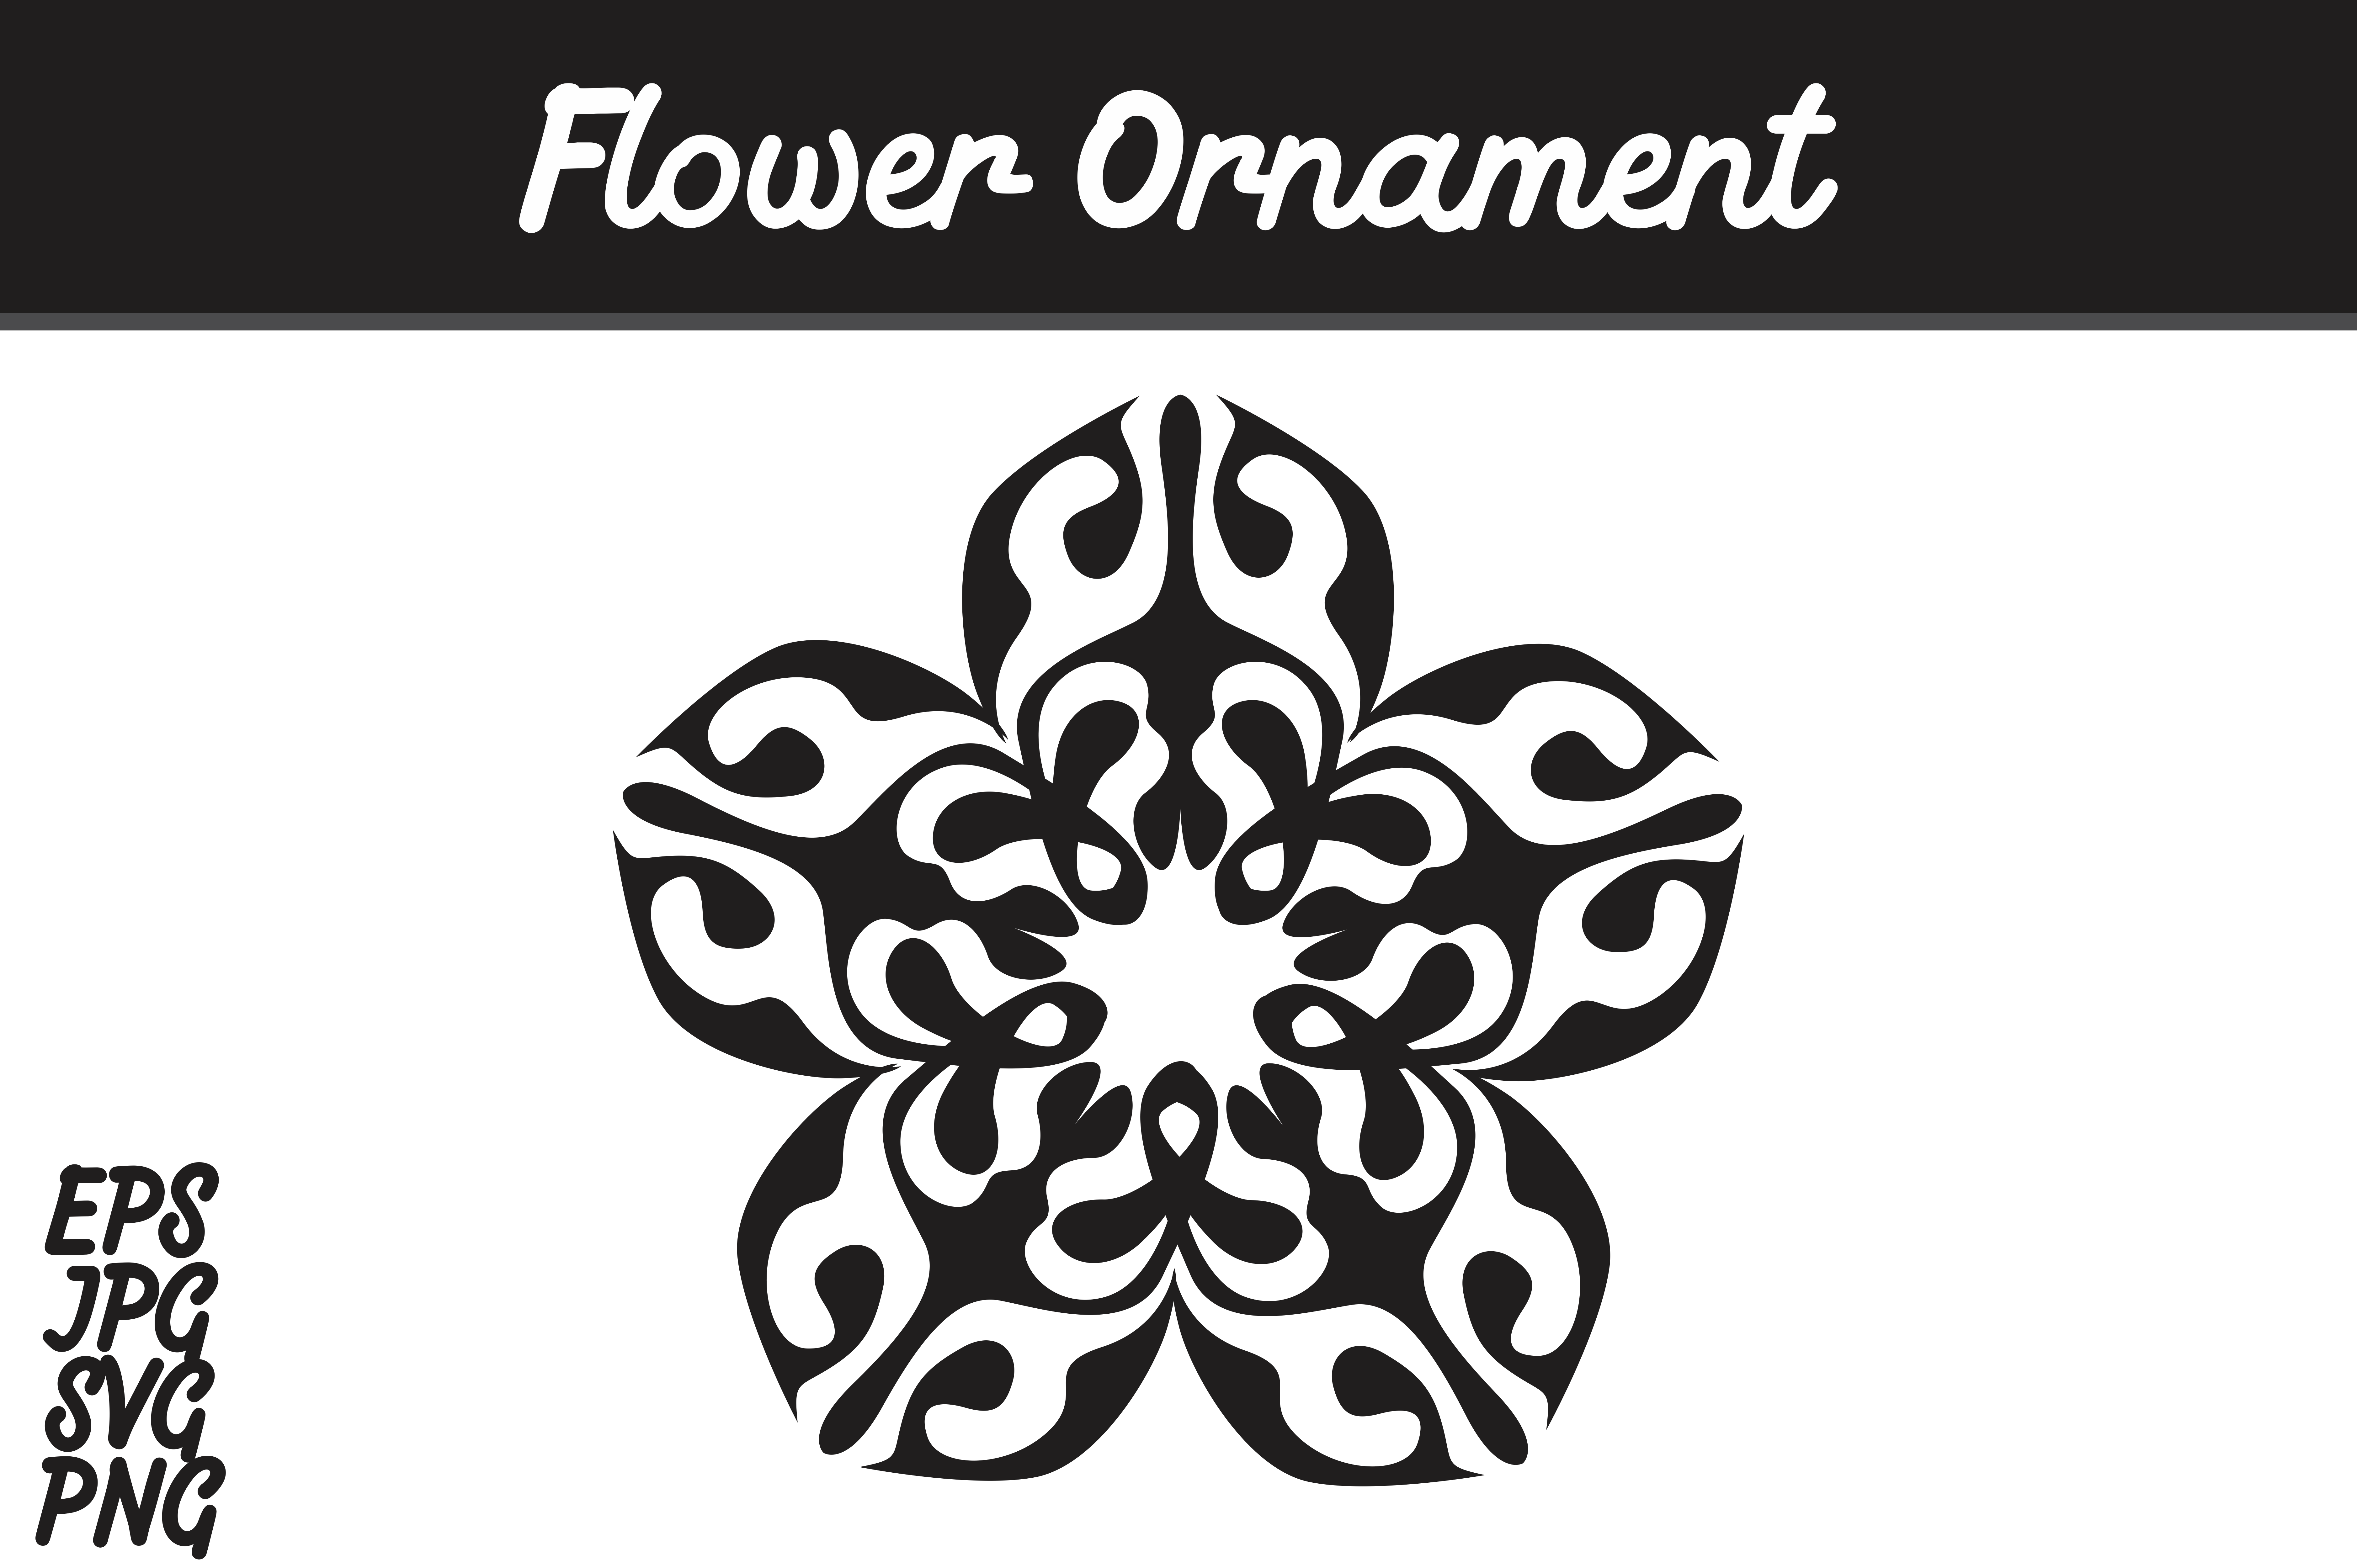 Download Free Flower Ornament Svg Vector Image Graphic By Arief Sapta Adjie for Cricut Explore, Silhouette and other cutting machines.